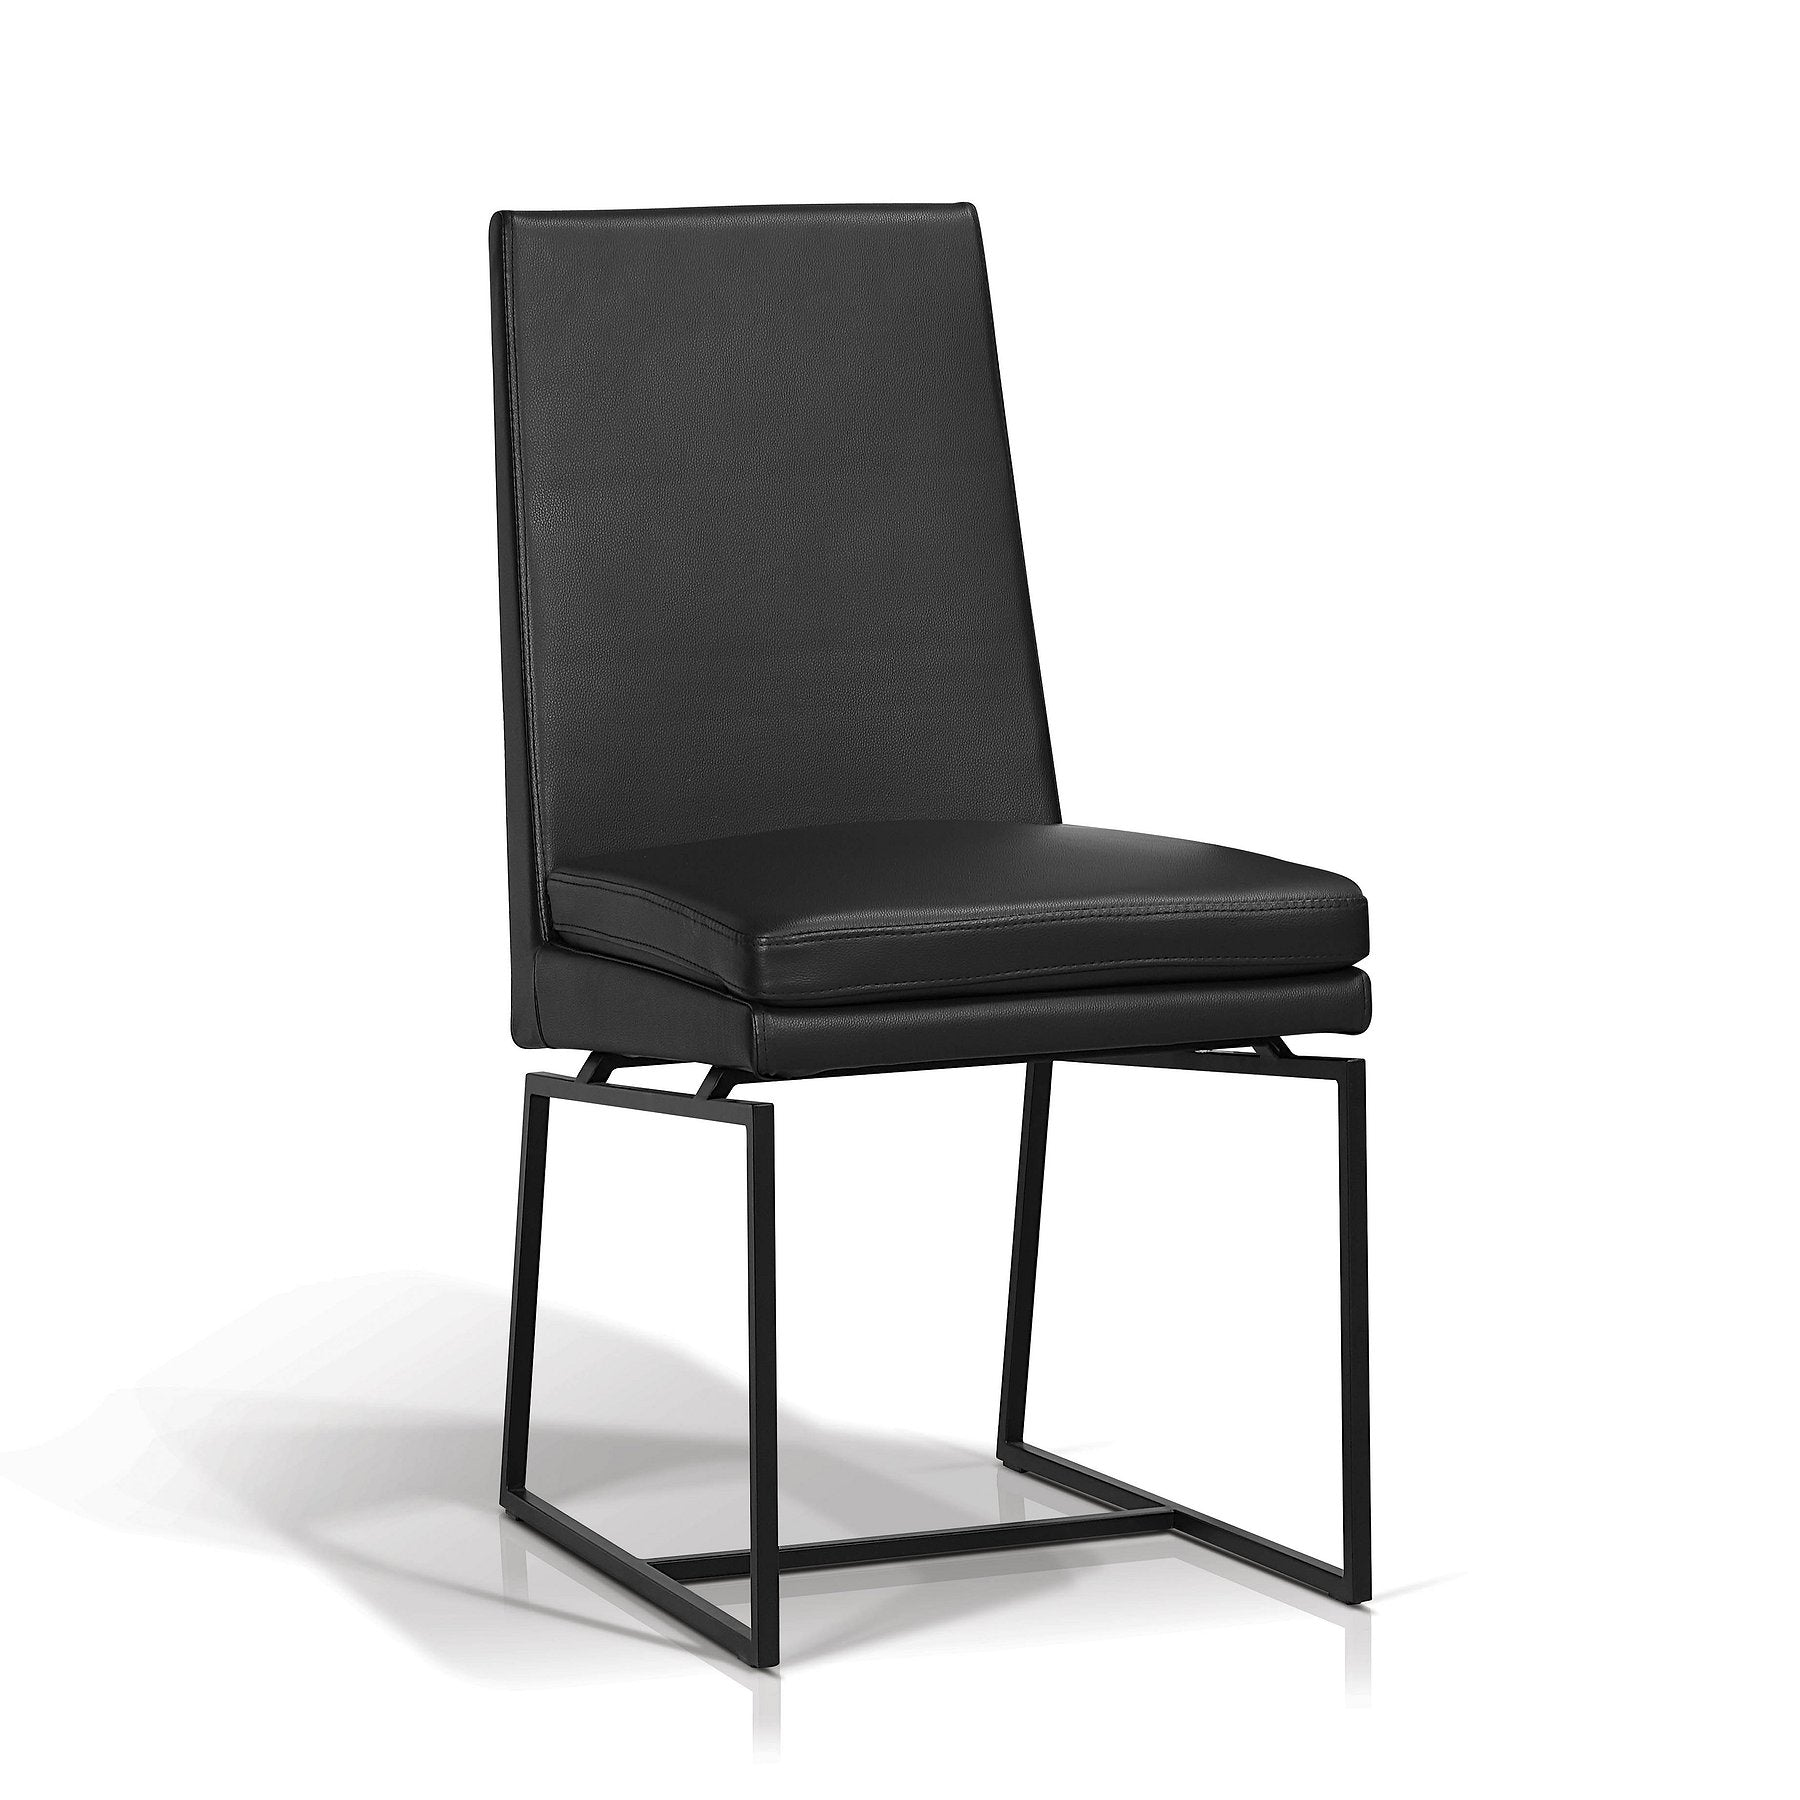 Picture of Neo Dining Chair